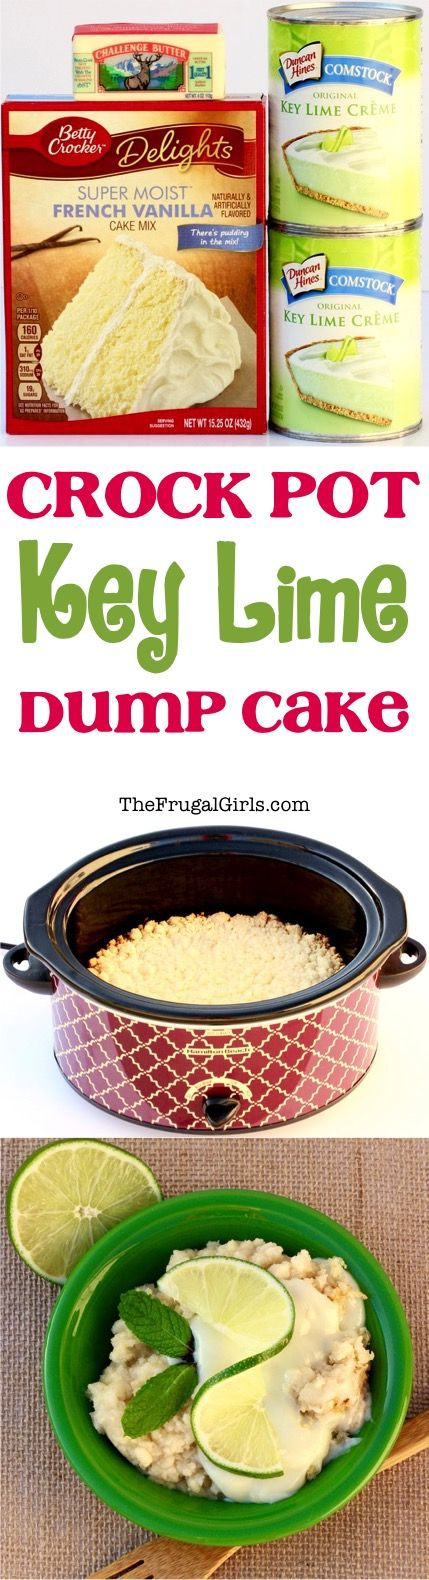 Crock Pot Key Lime Dump Cake Recipe! ~ from TheFrugalGirls.com ~ just a few easy ingredients and you've got Key Lime Heaven in your Slow Cooker... the perfect dessert for your next party or cookout!: